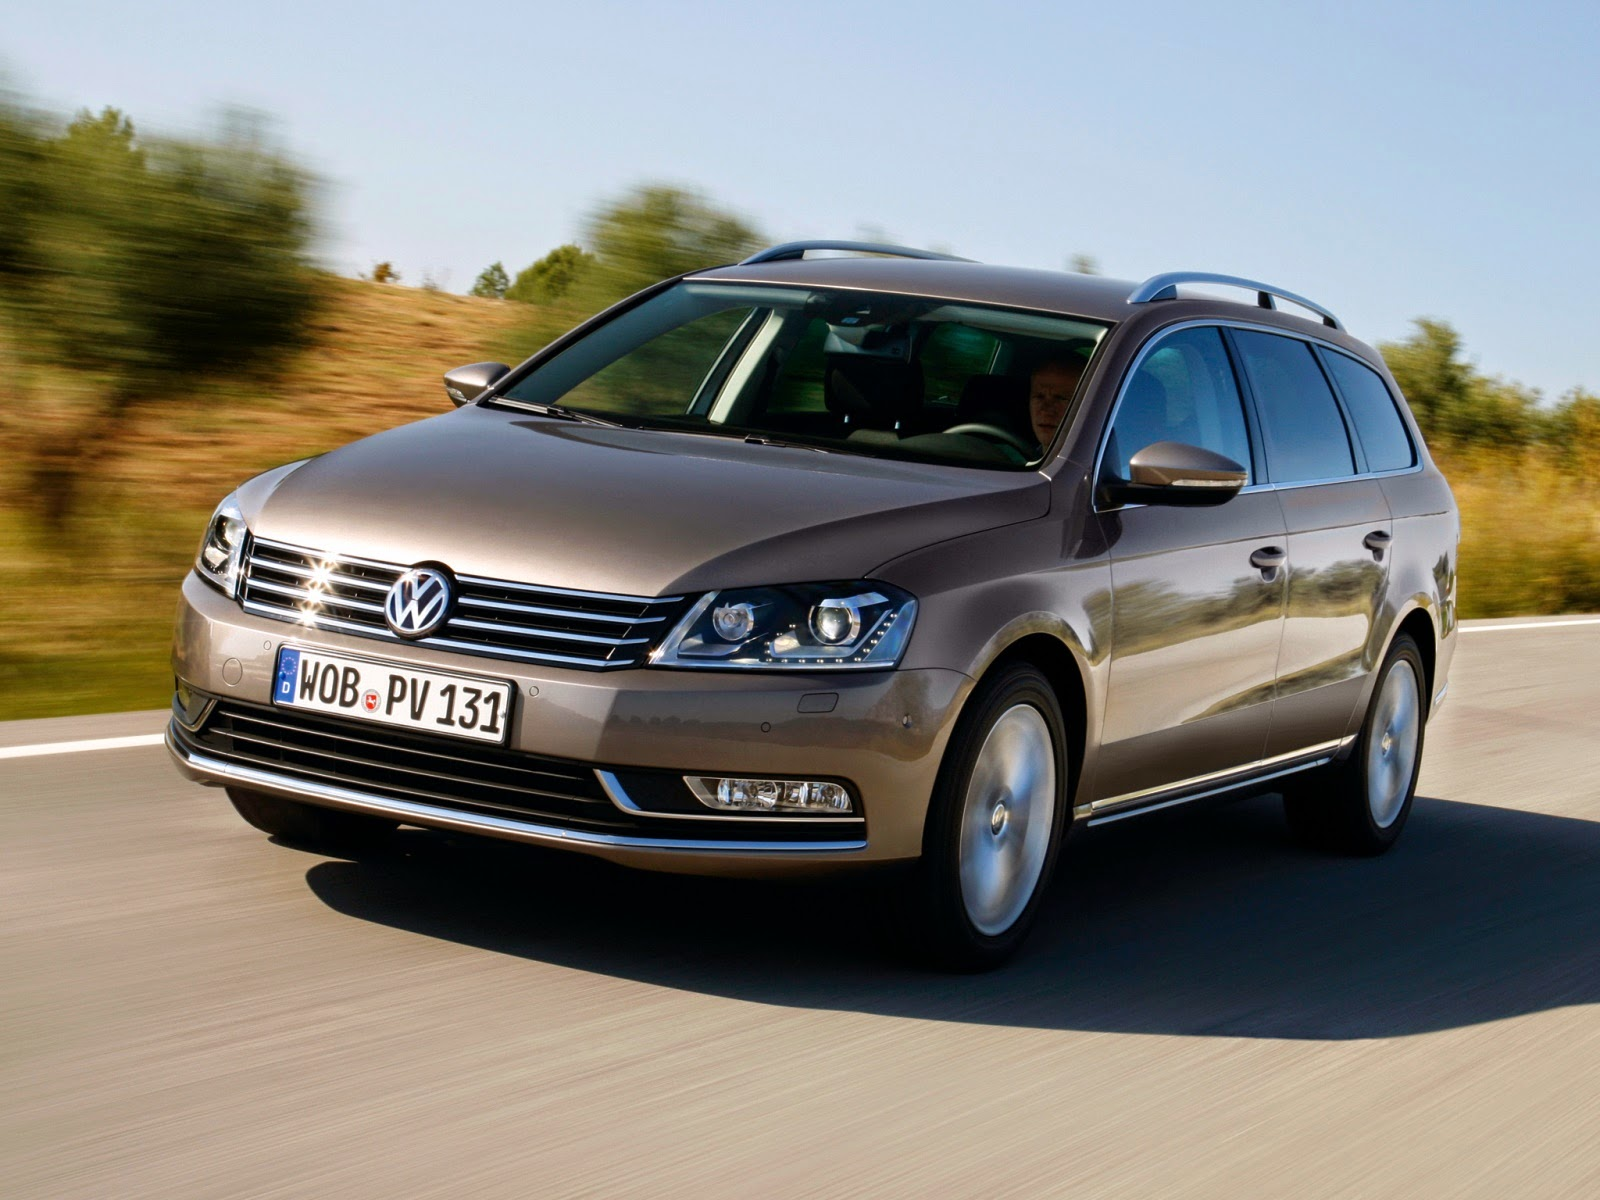 auto review 15 volkswagen passat b7 classy practical and refined. Black Bedroom Furniture Sets. Home Design Ideas